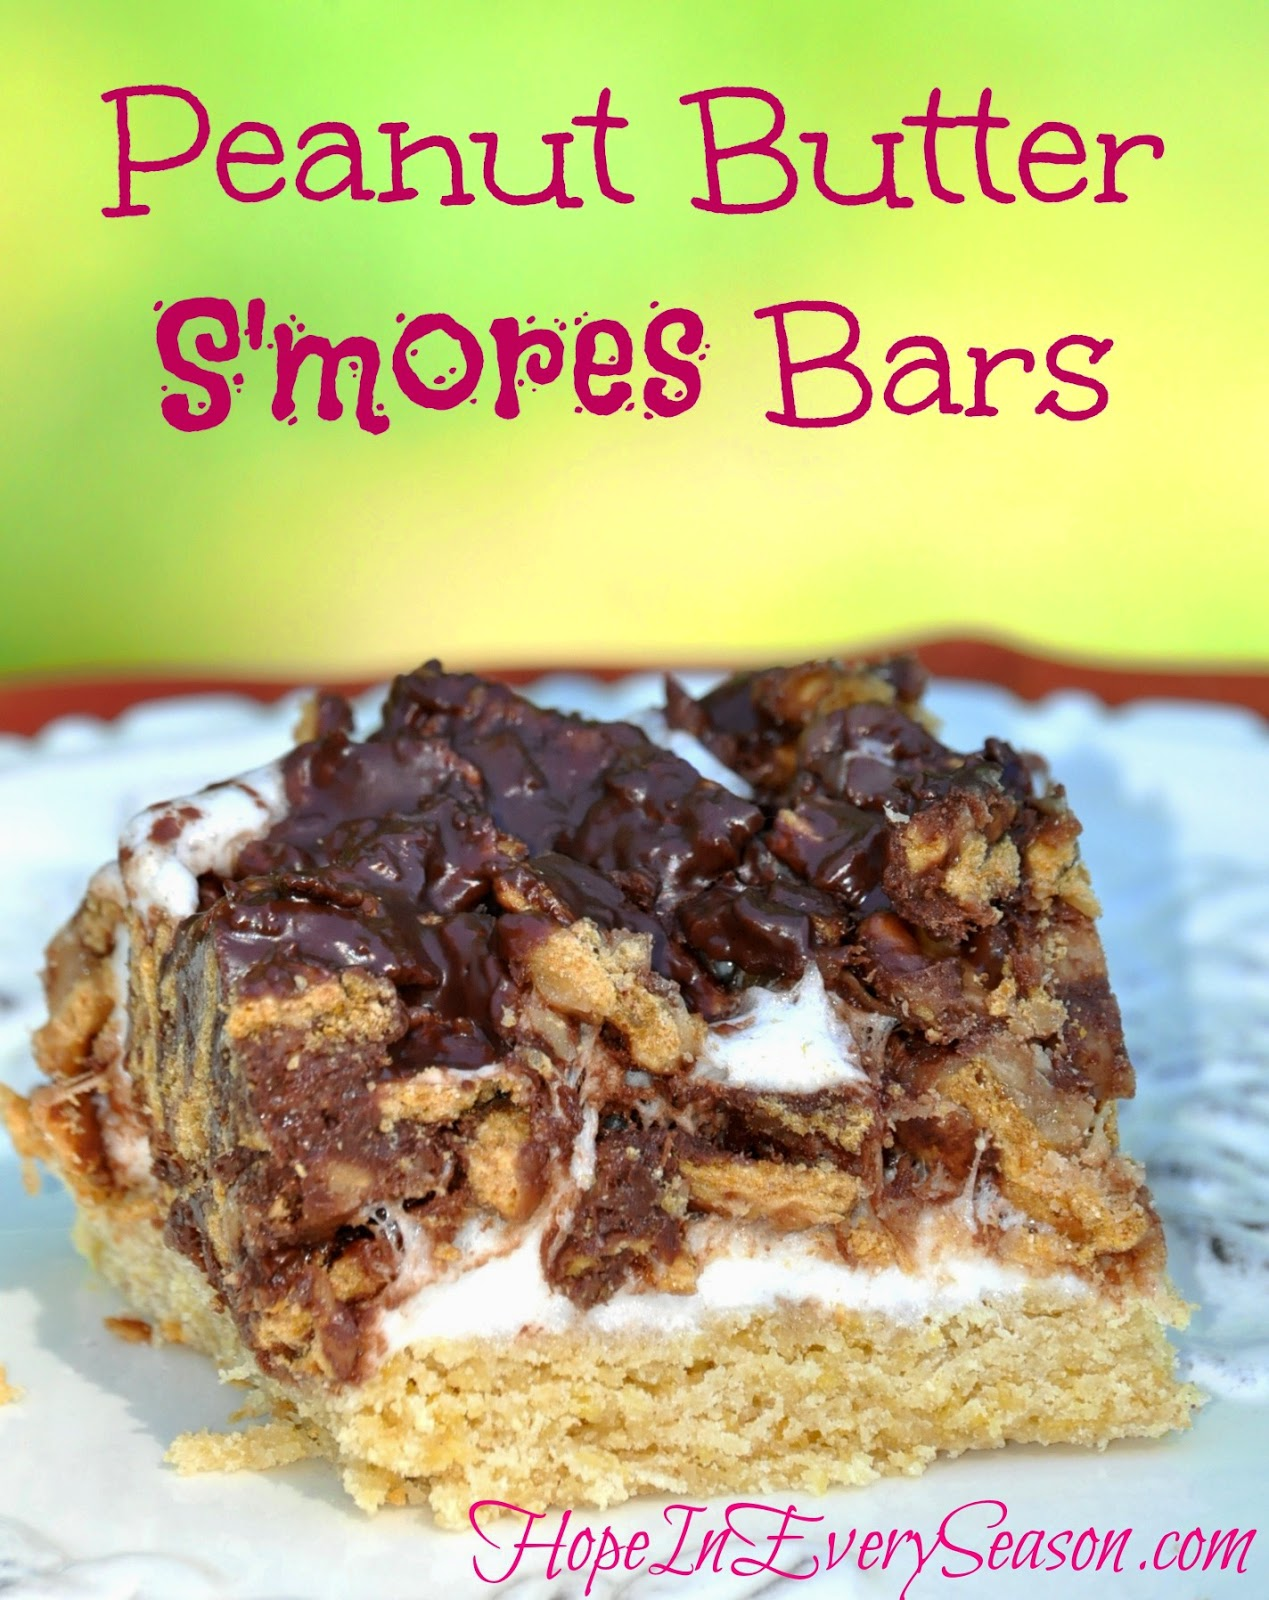 Or these Peanut Butter S'mores Bars ...